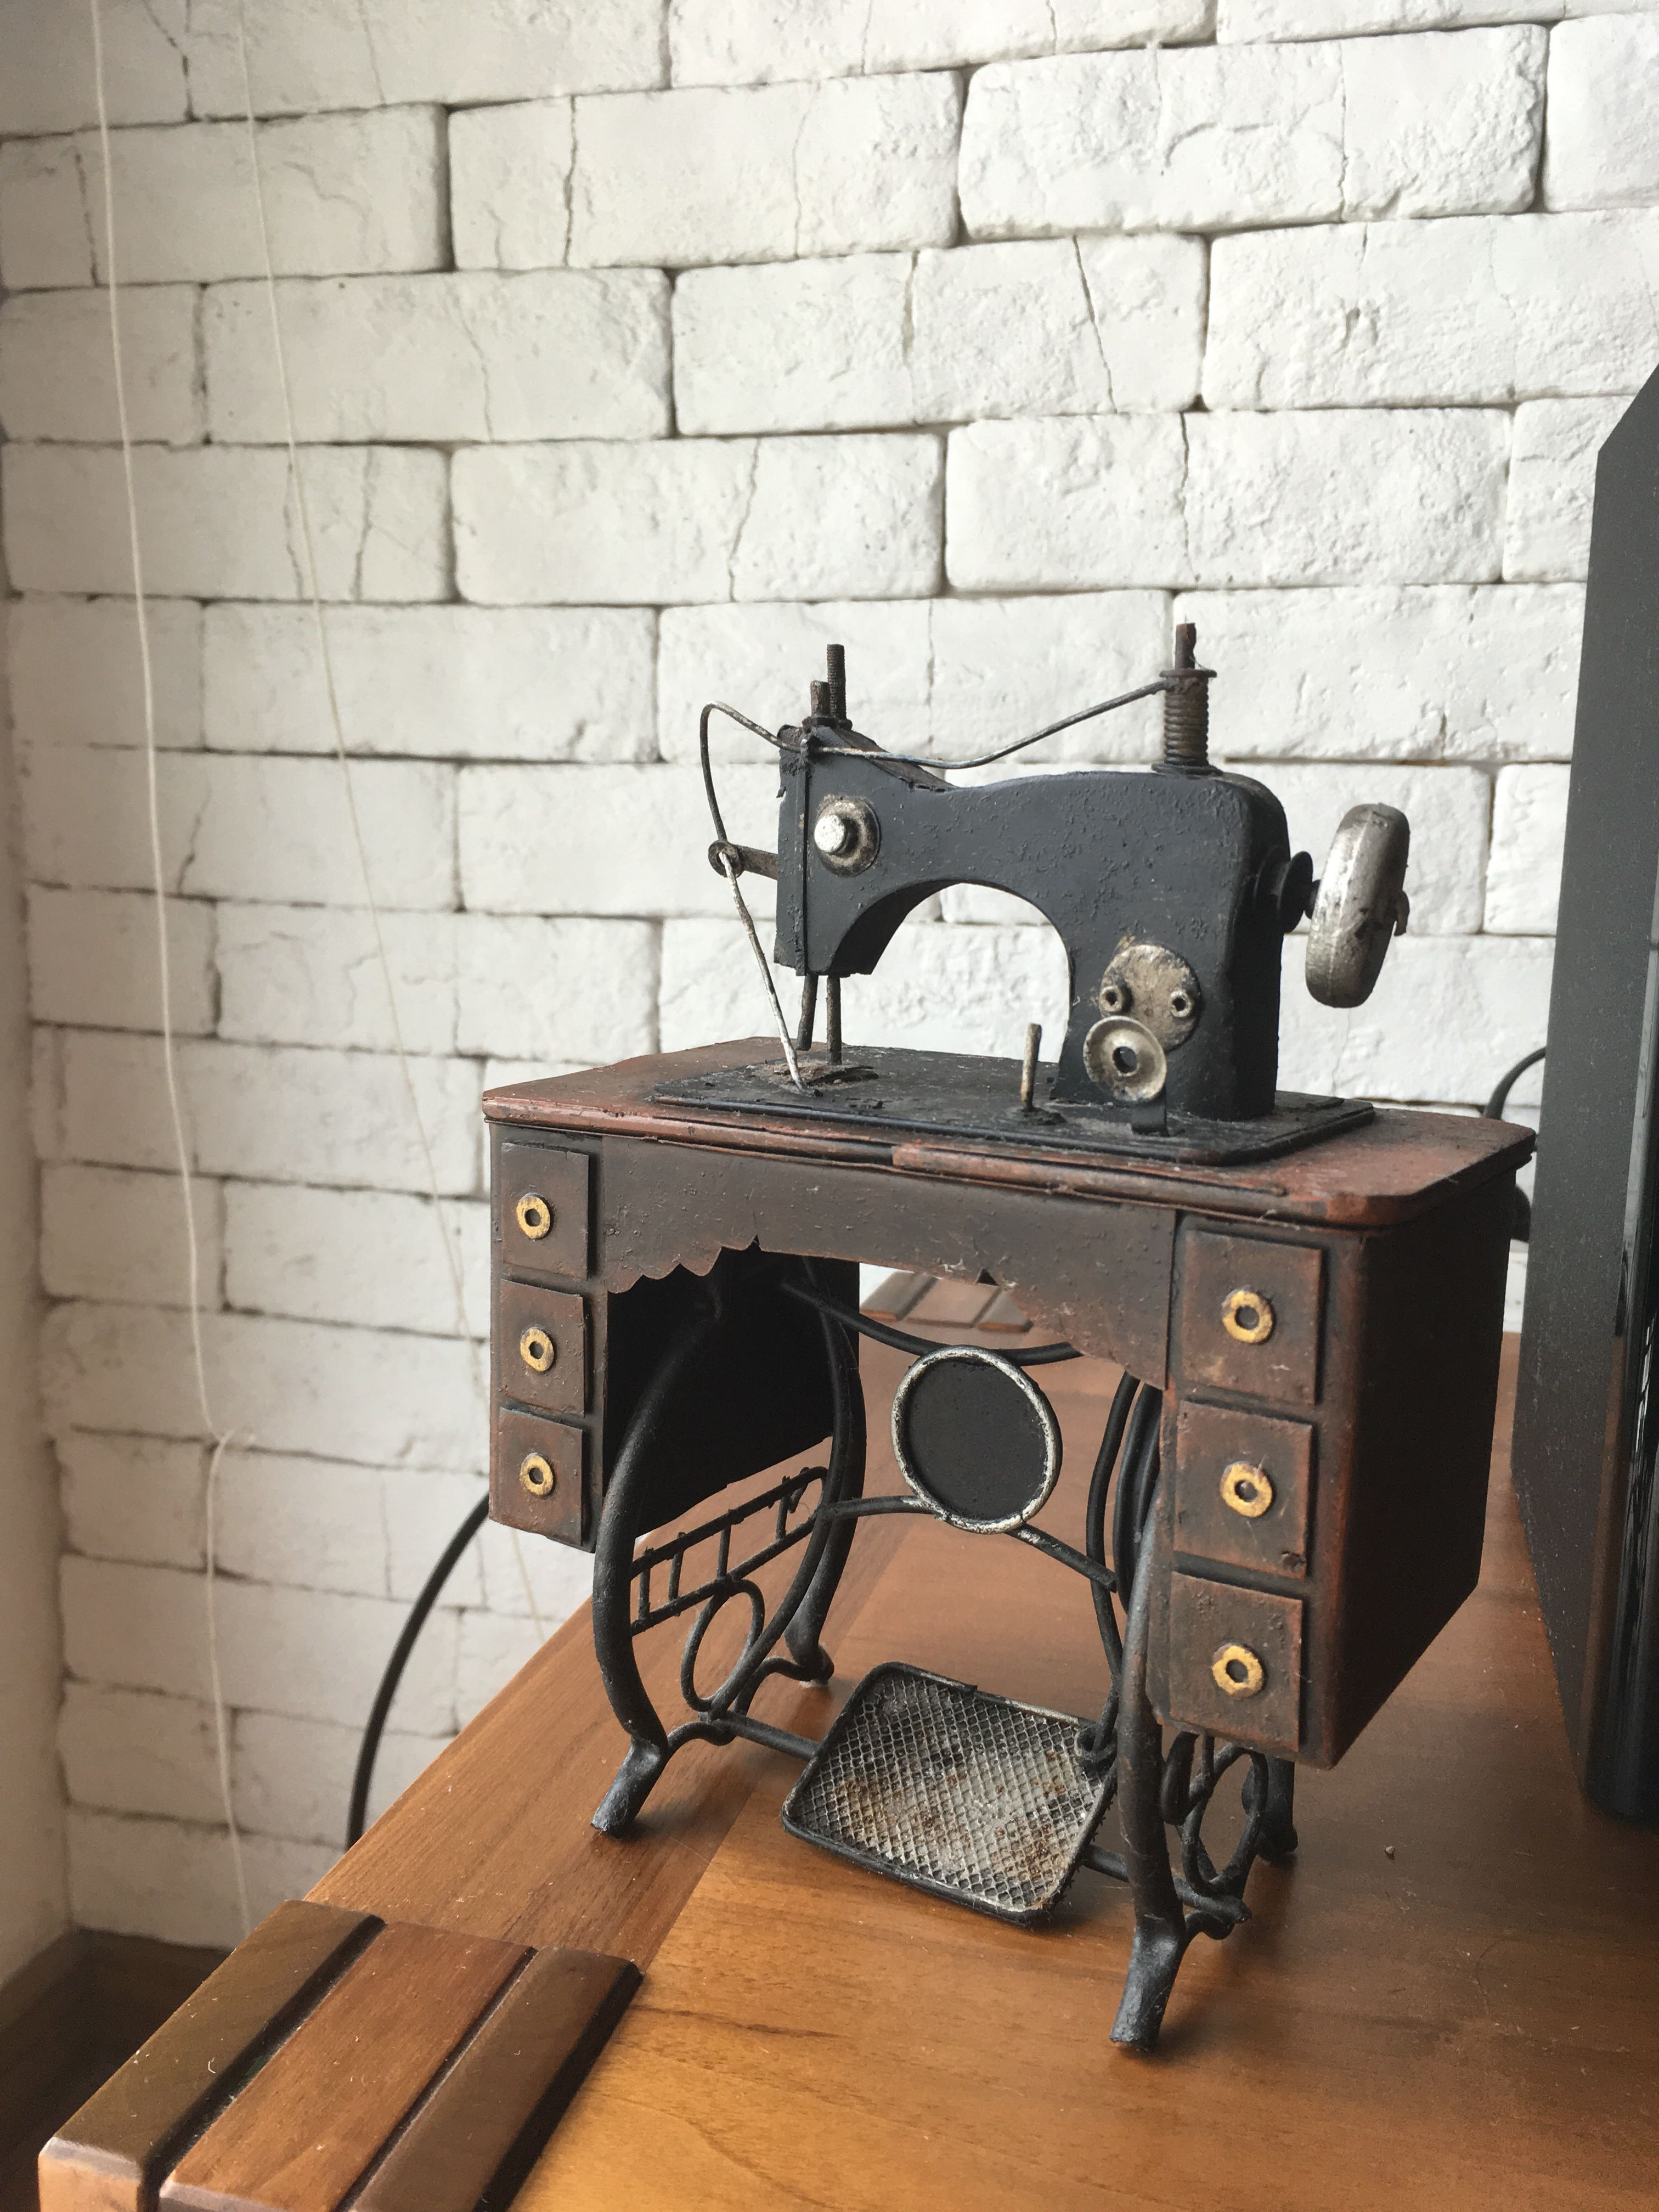 Vintage Sewing Machine Model Furniture